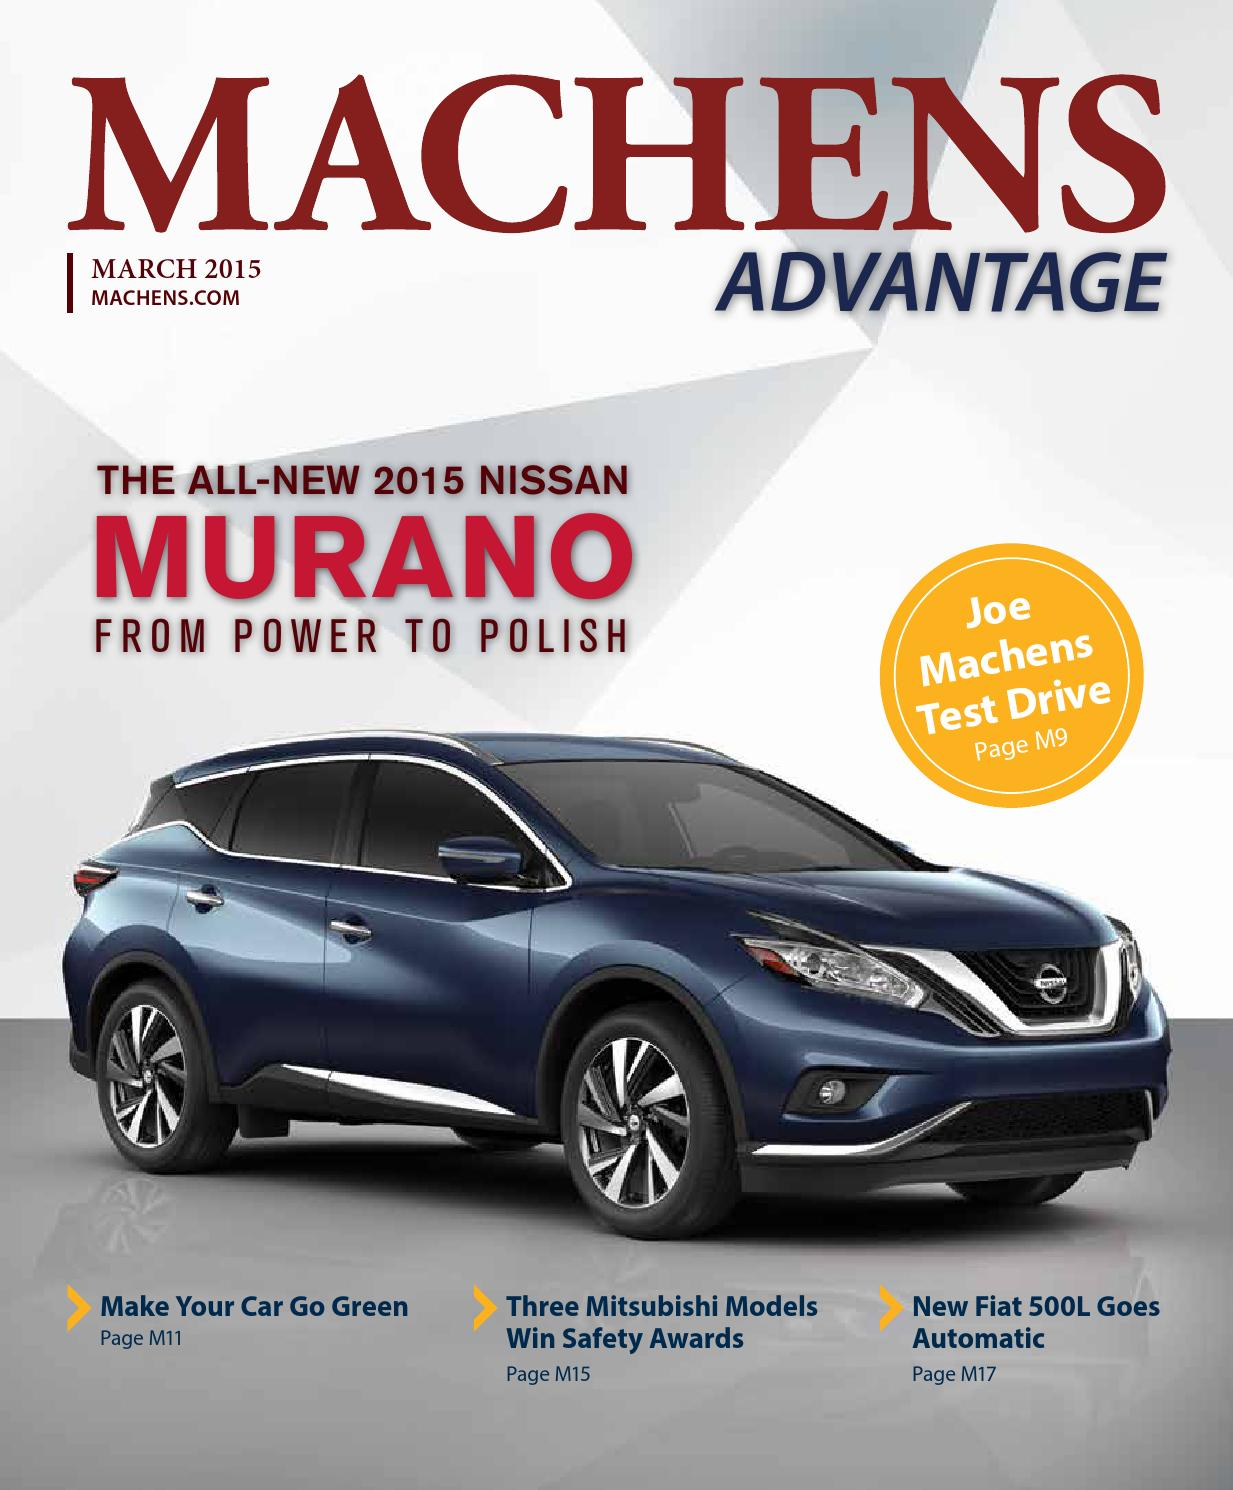 Car Dealerships In Columbia Mo >> March Machens Advantage magazine by Joe Machens Dealerships - Issuu